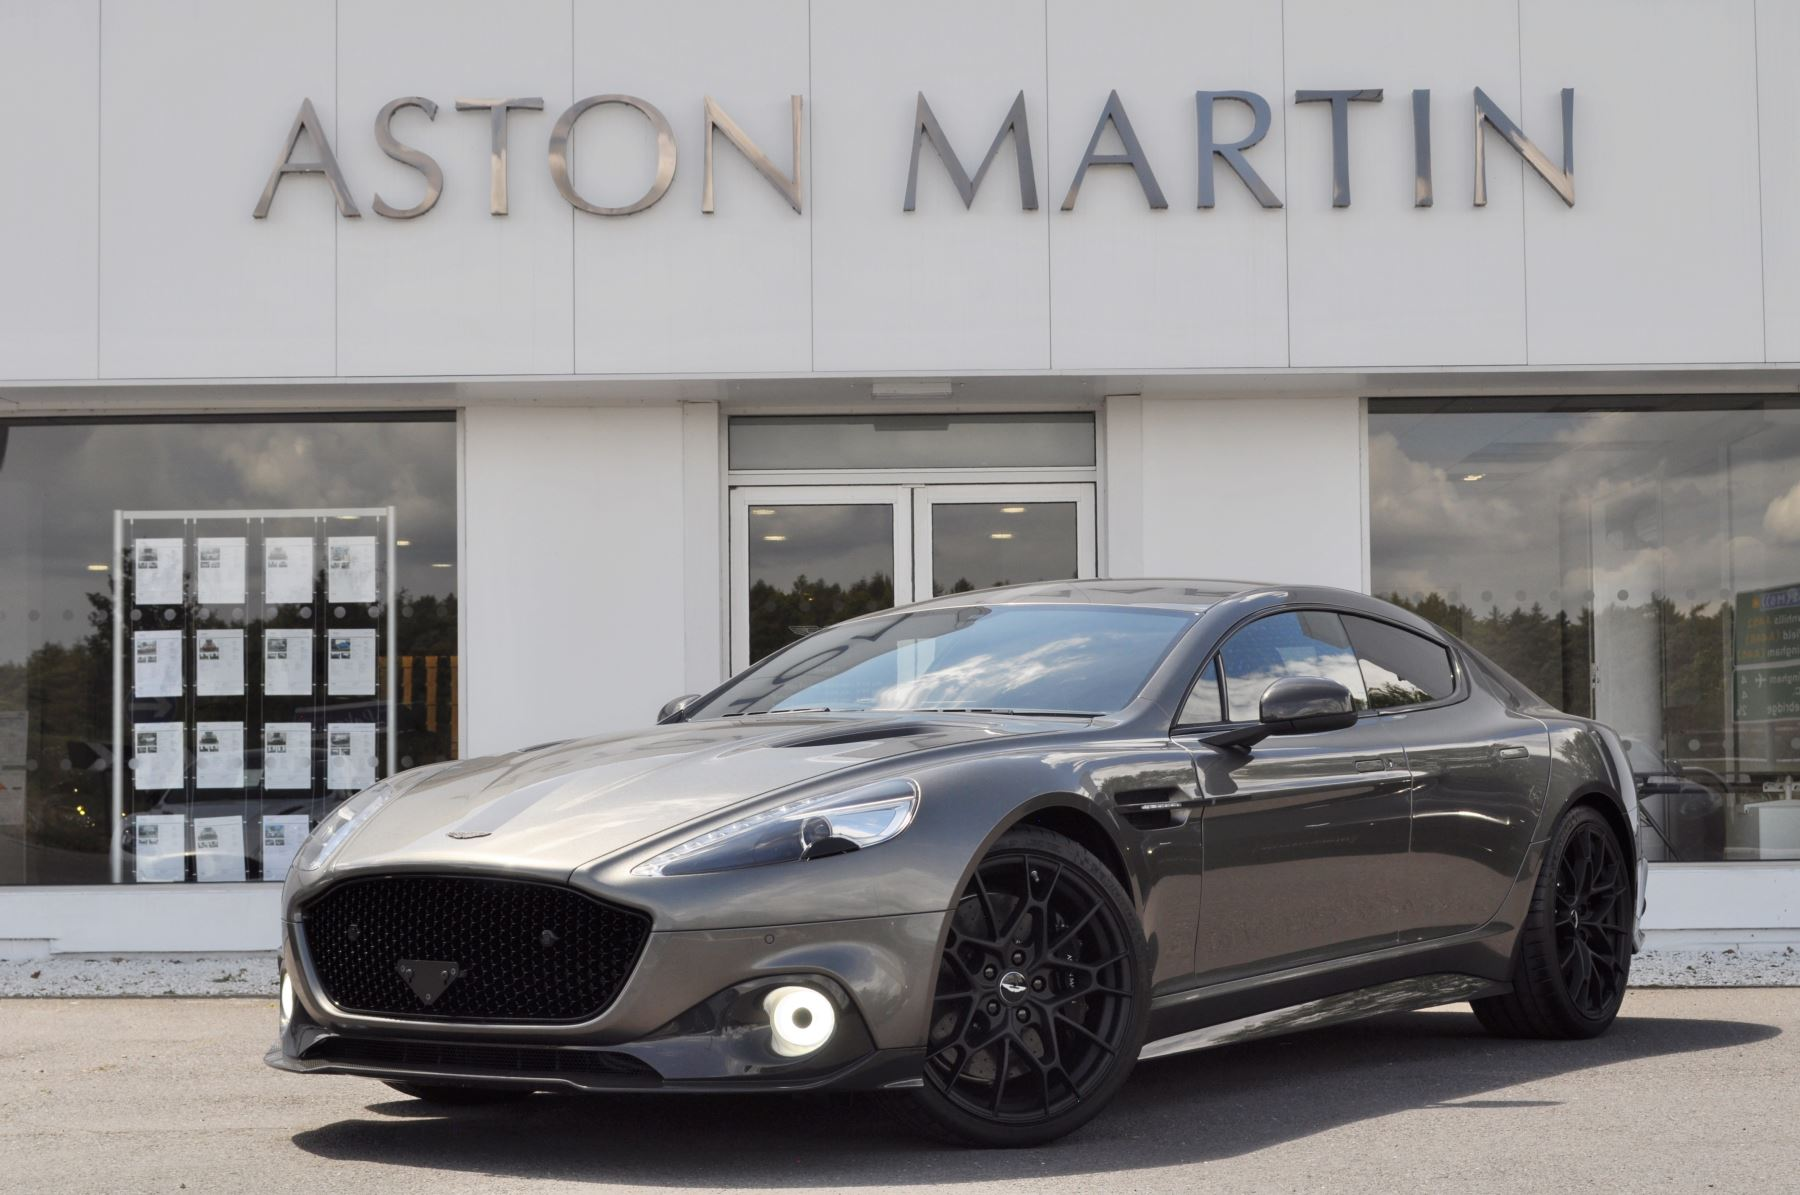 Aston Martin Rapide S Rapide AMR 5.9 Automatic 5 door Saloon (19MY) image